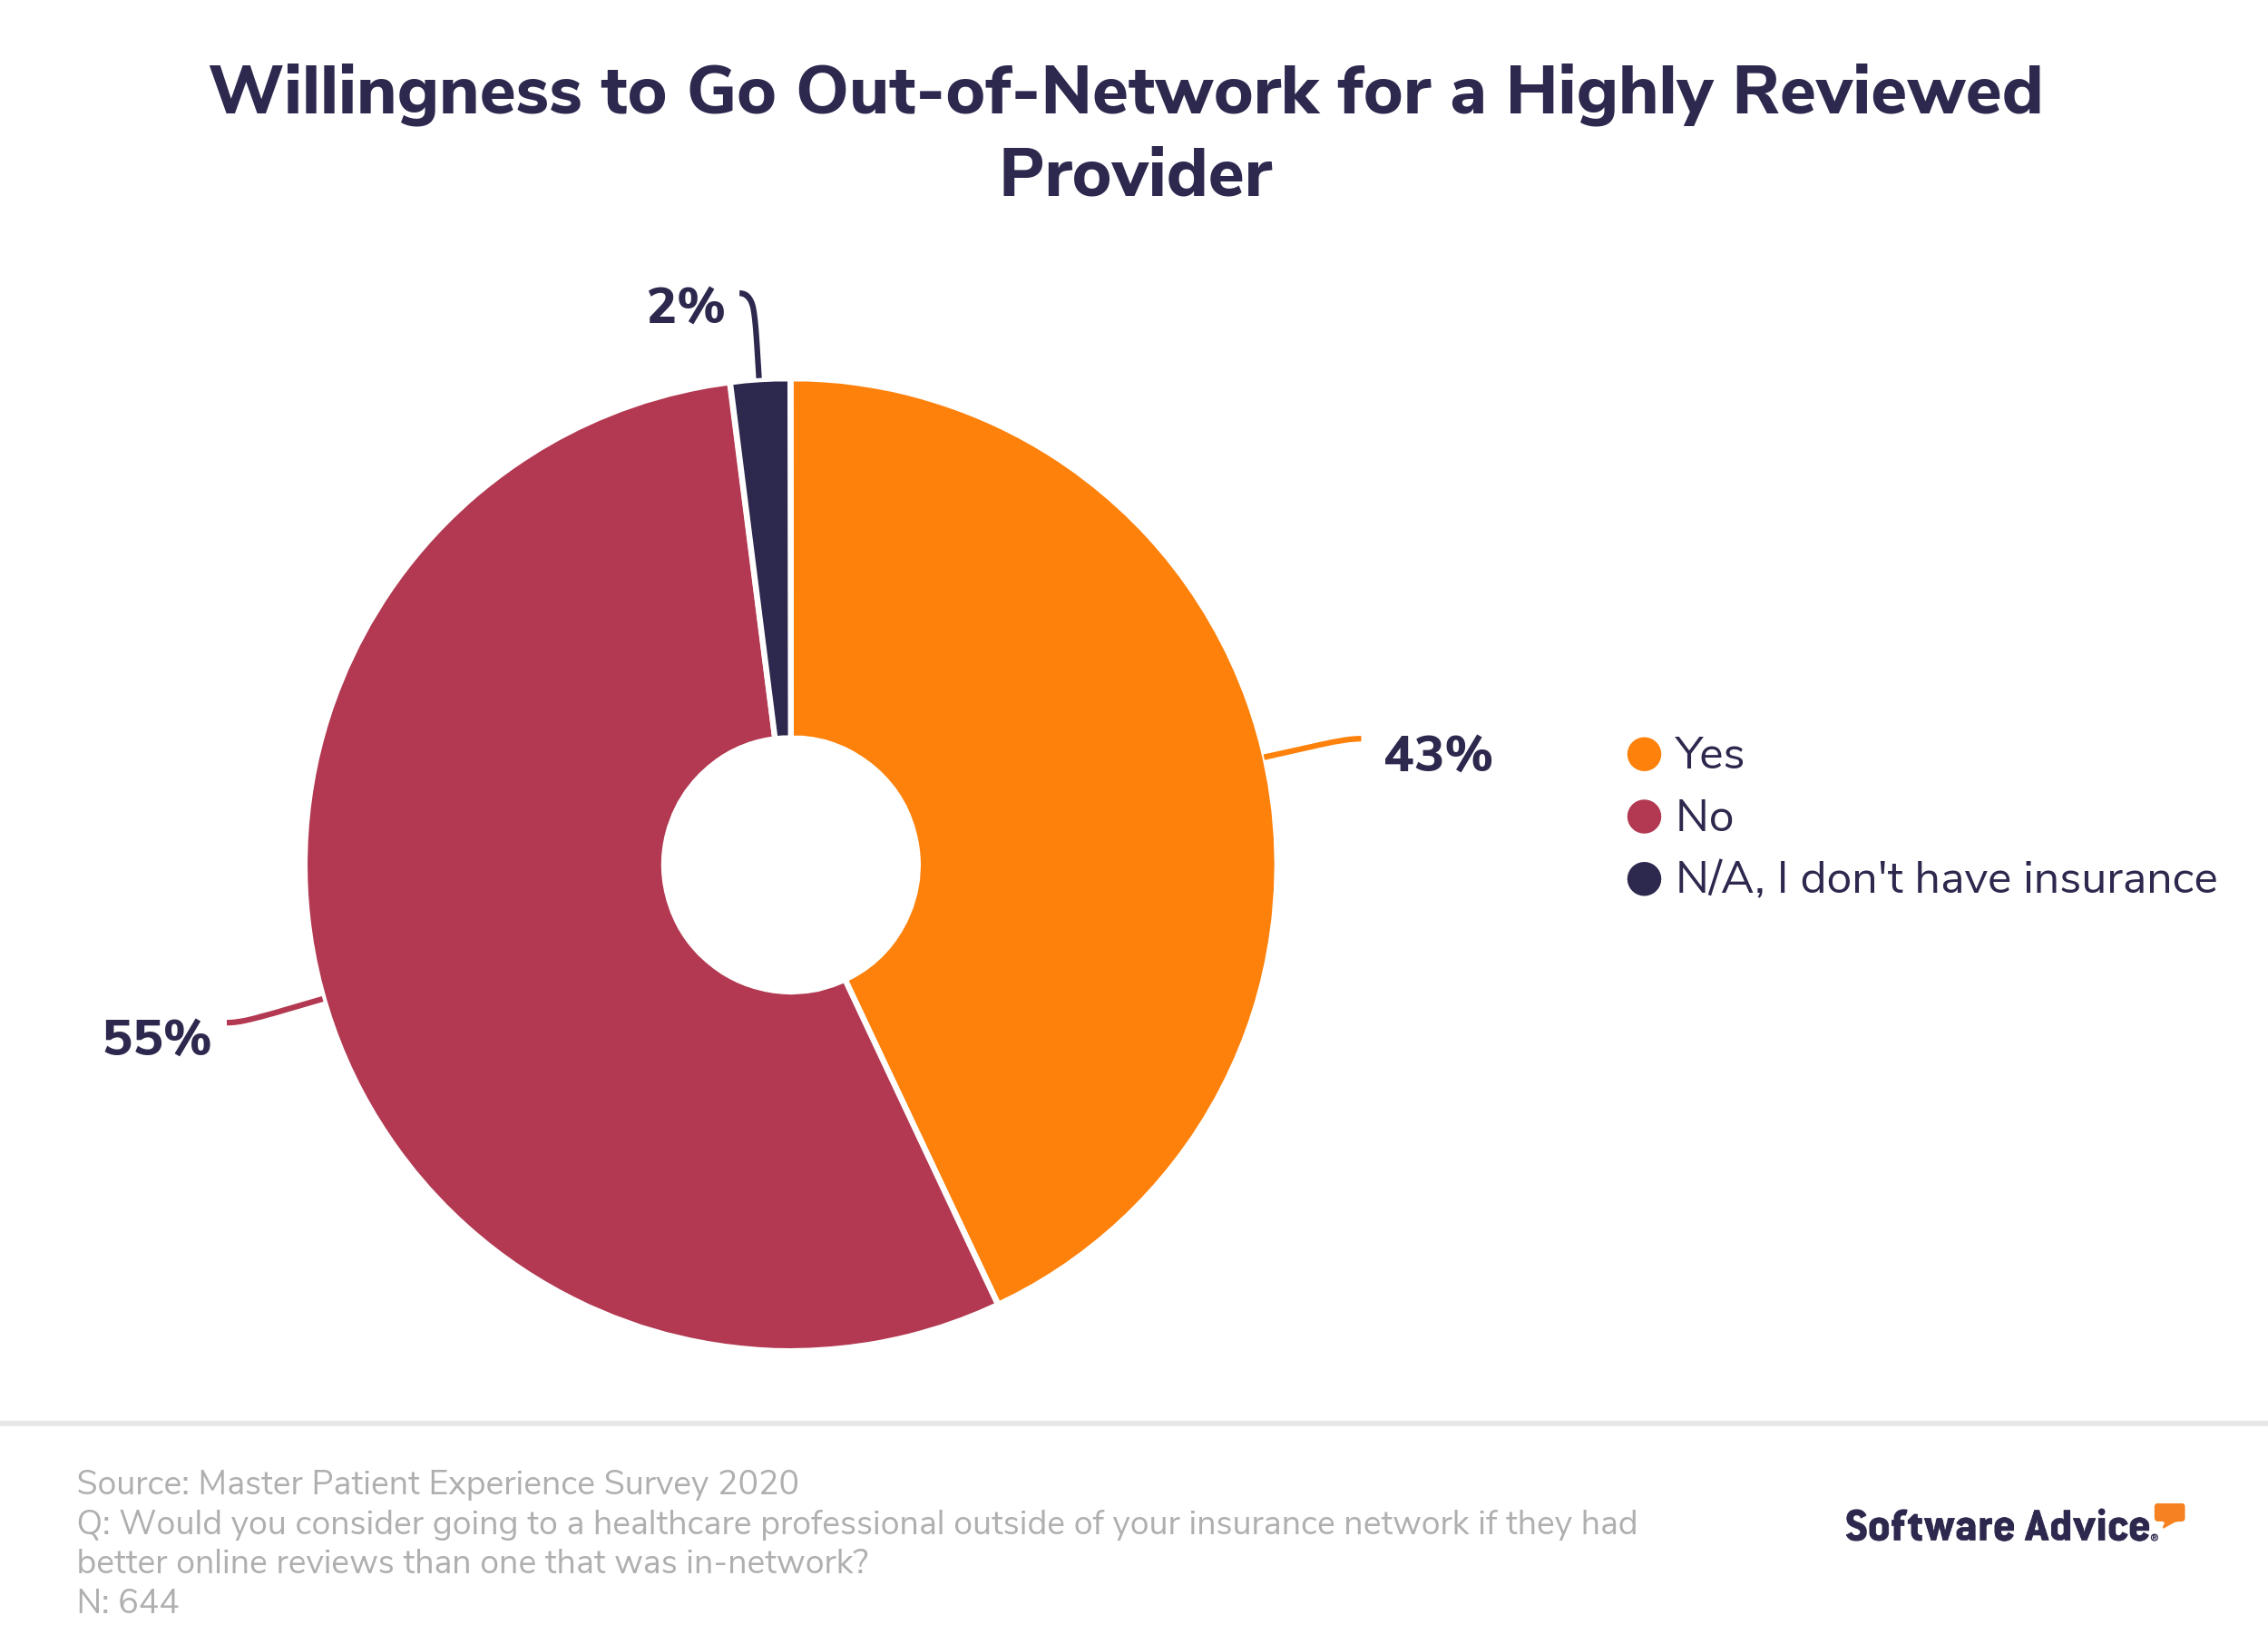 Willingness to Go Out-of-Network to a Provider With Better Reviews